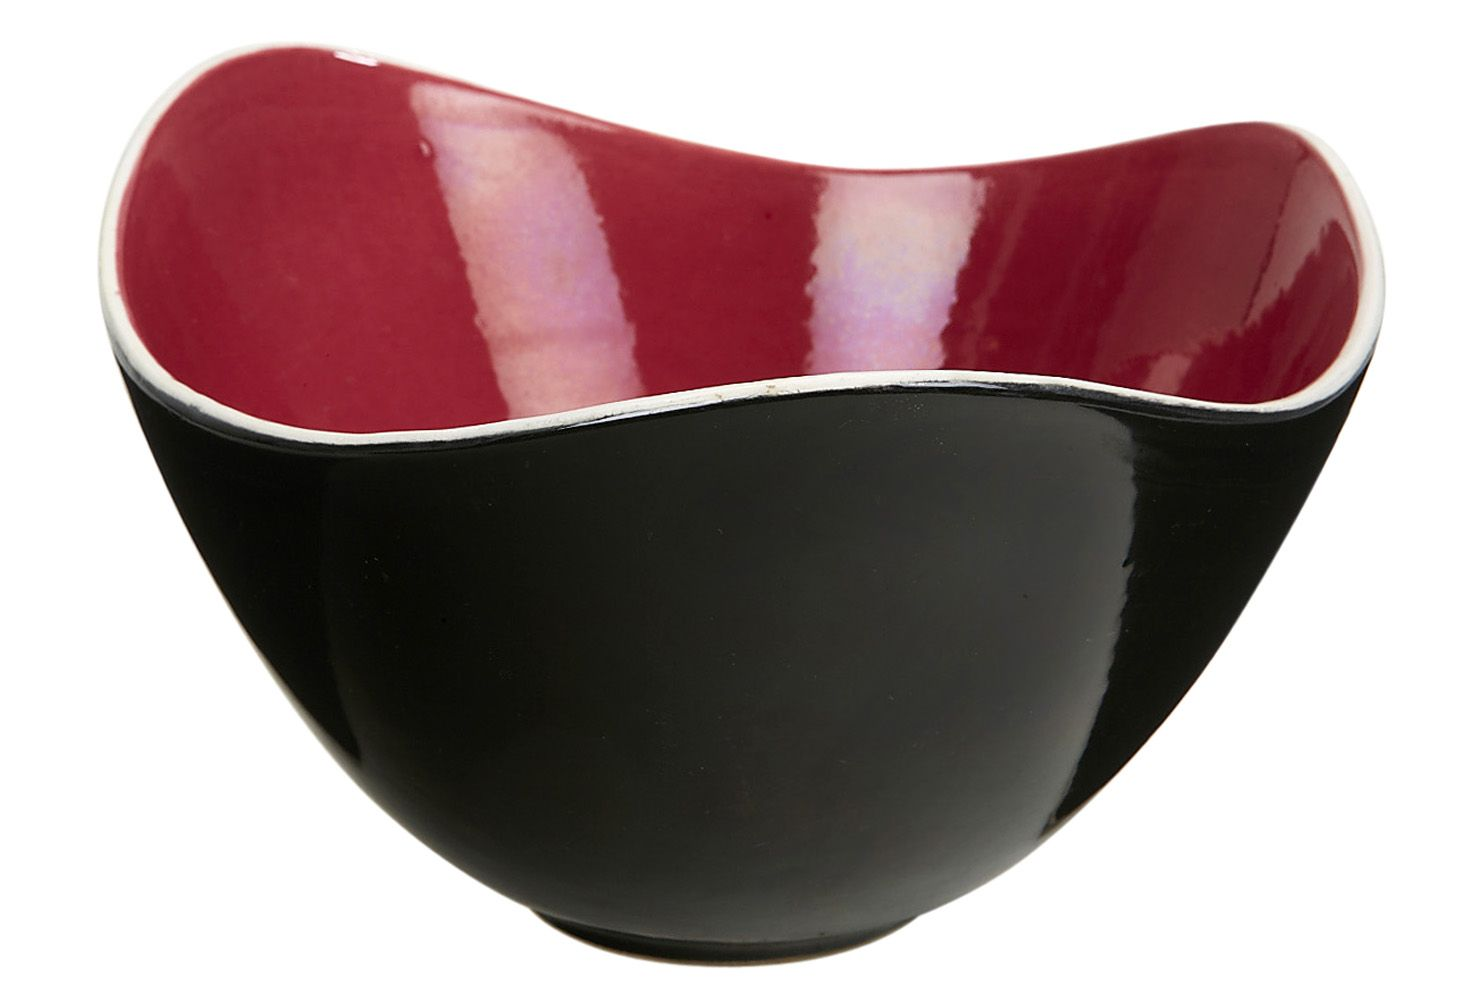 Midcentury Modern Italian Pottery Bowl Second Shout Out